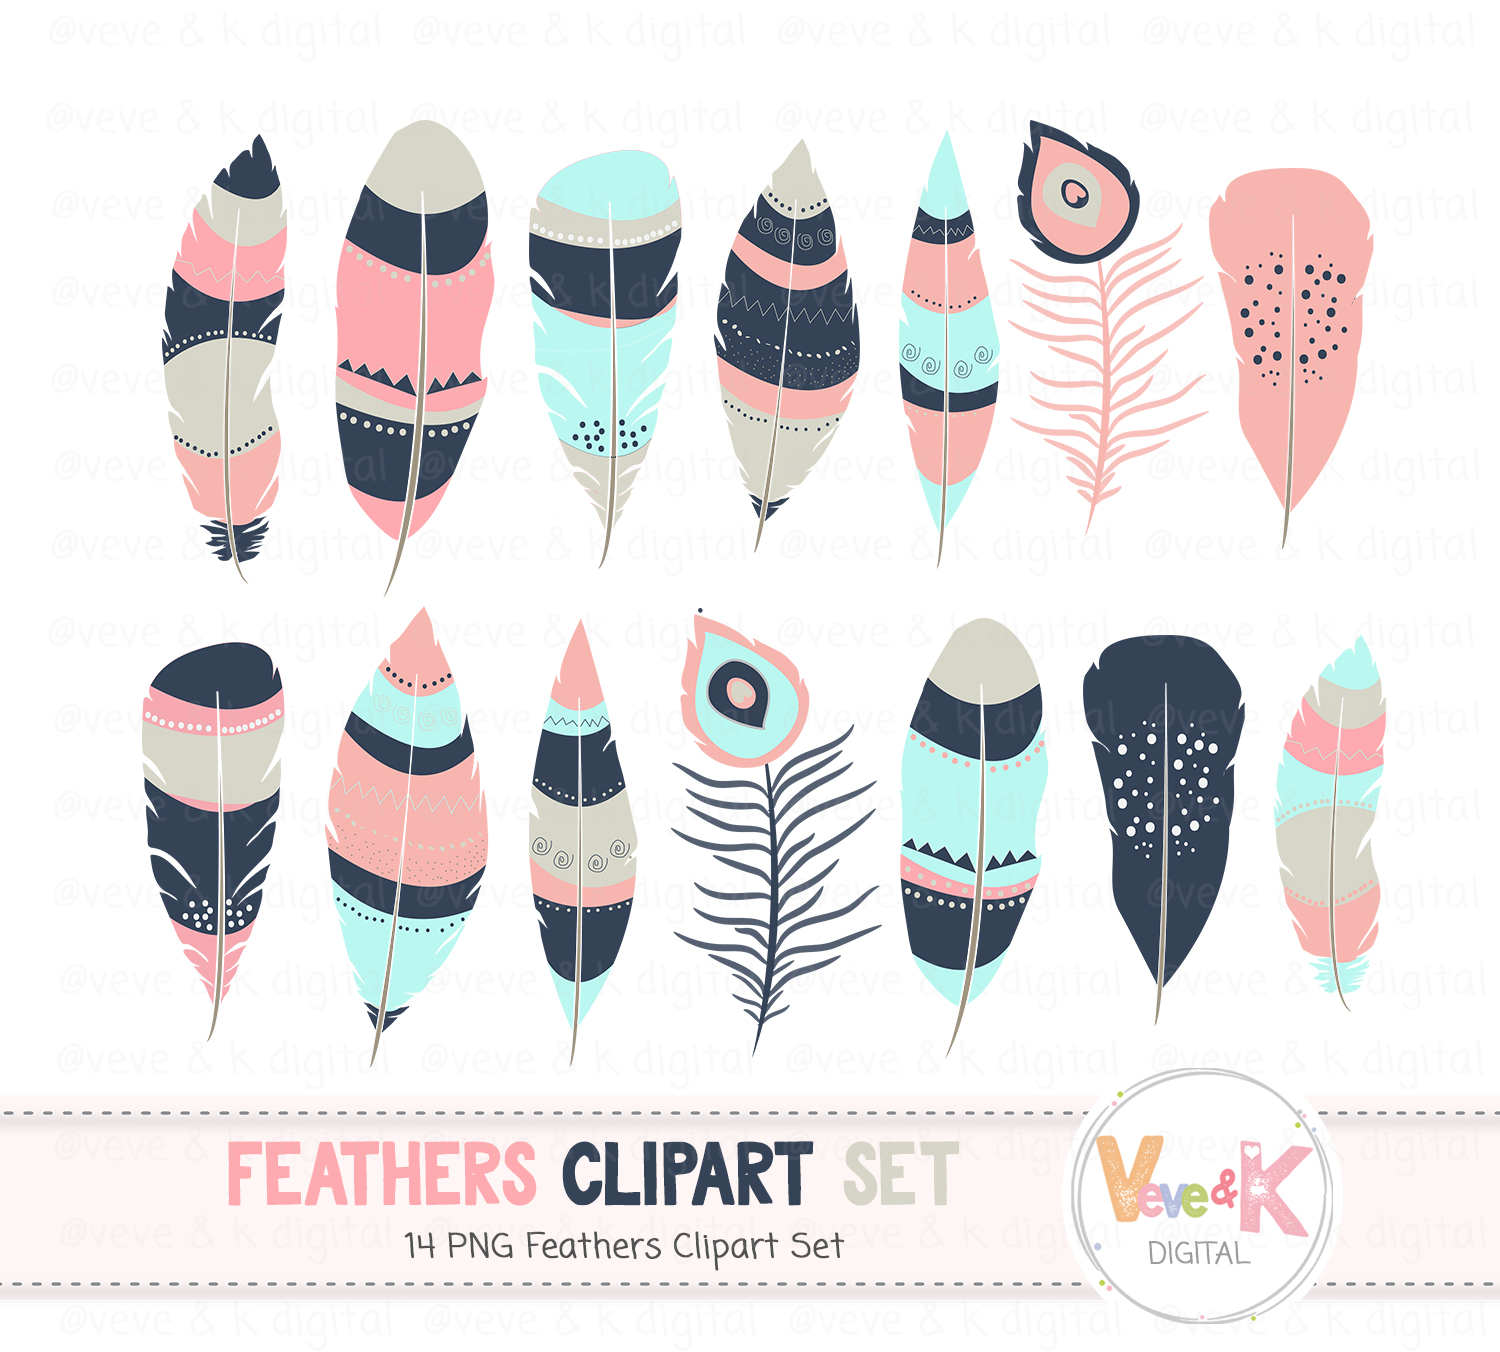 Feathers Clipart, Feathers, Tribal, Digital Feathers, Aztec Feathers, Navy Feathers, Teal Feathers, Tribal Feathers example image 2